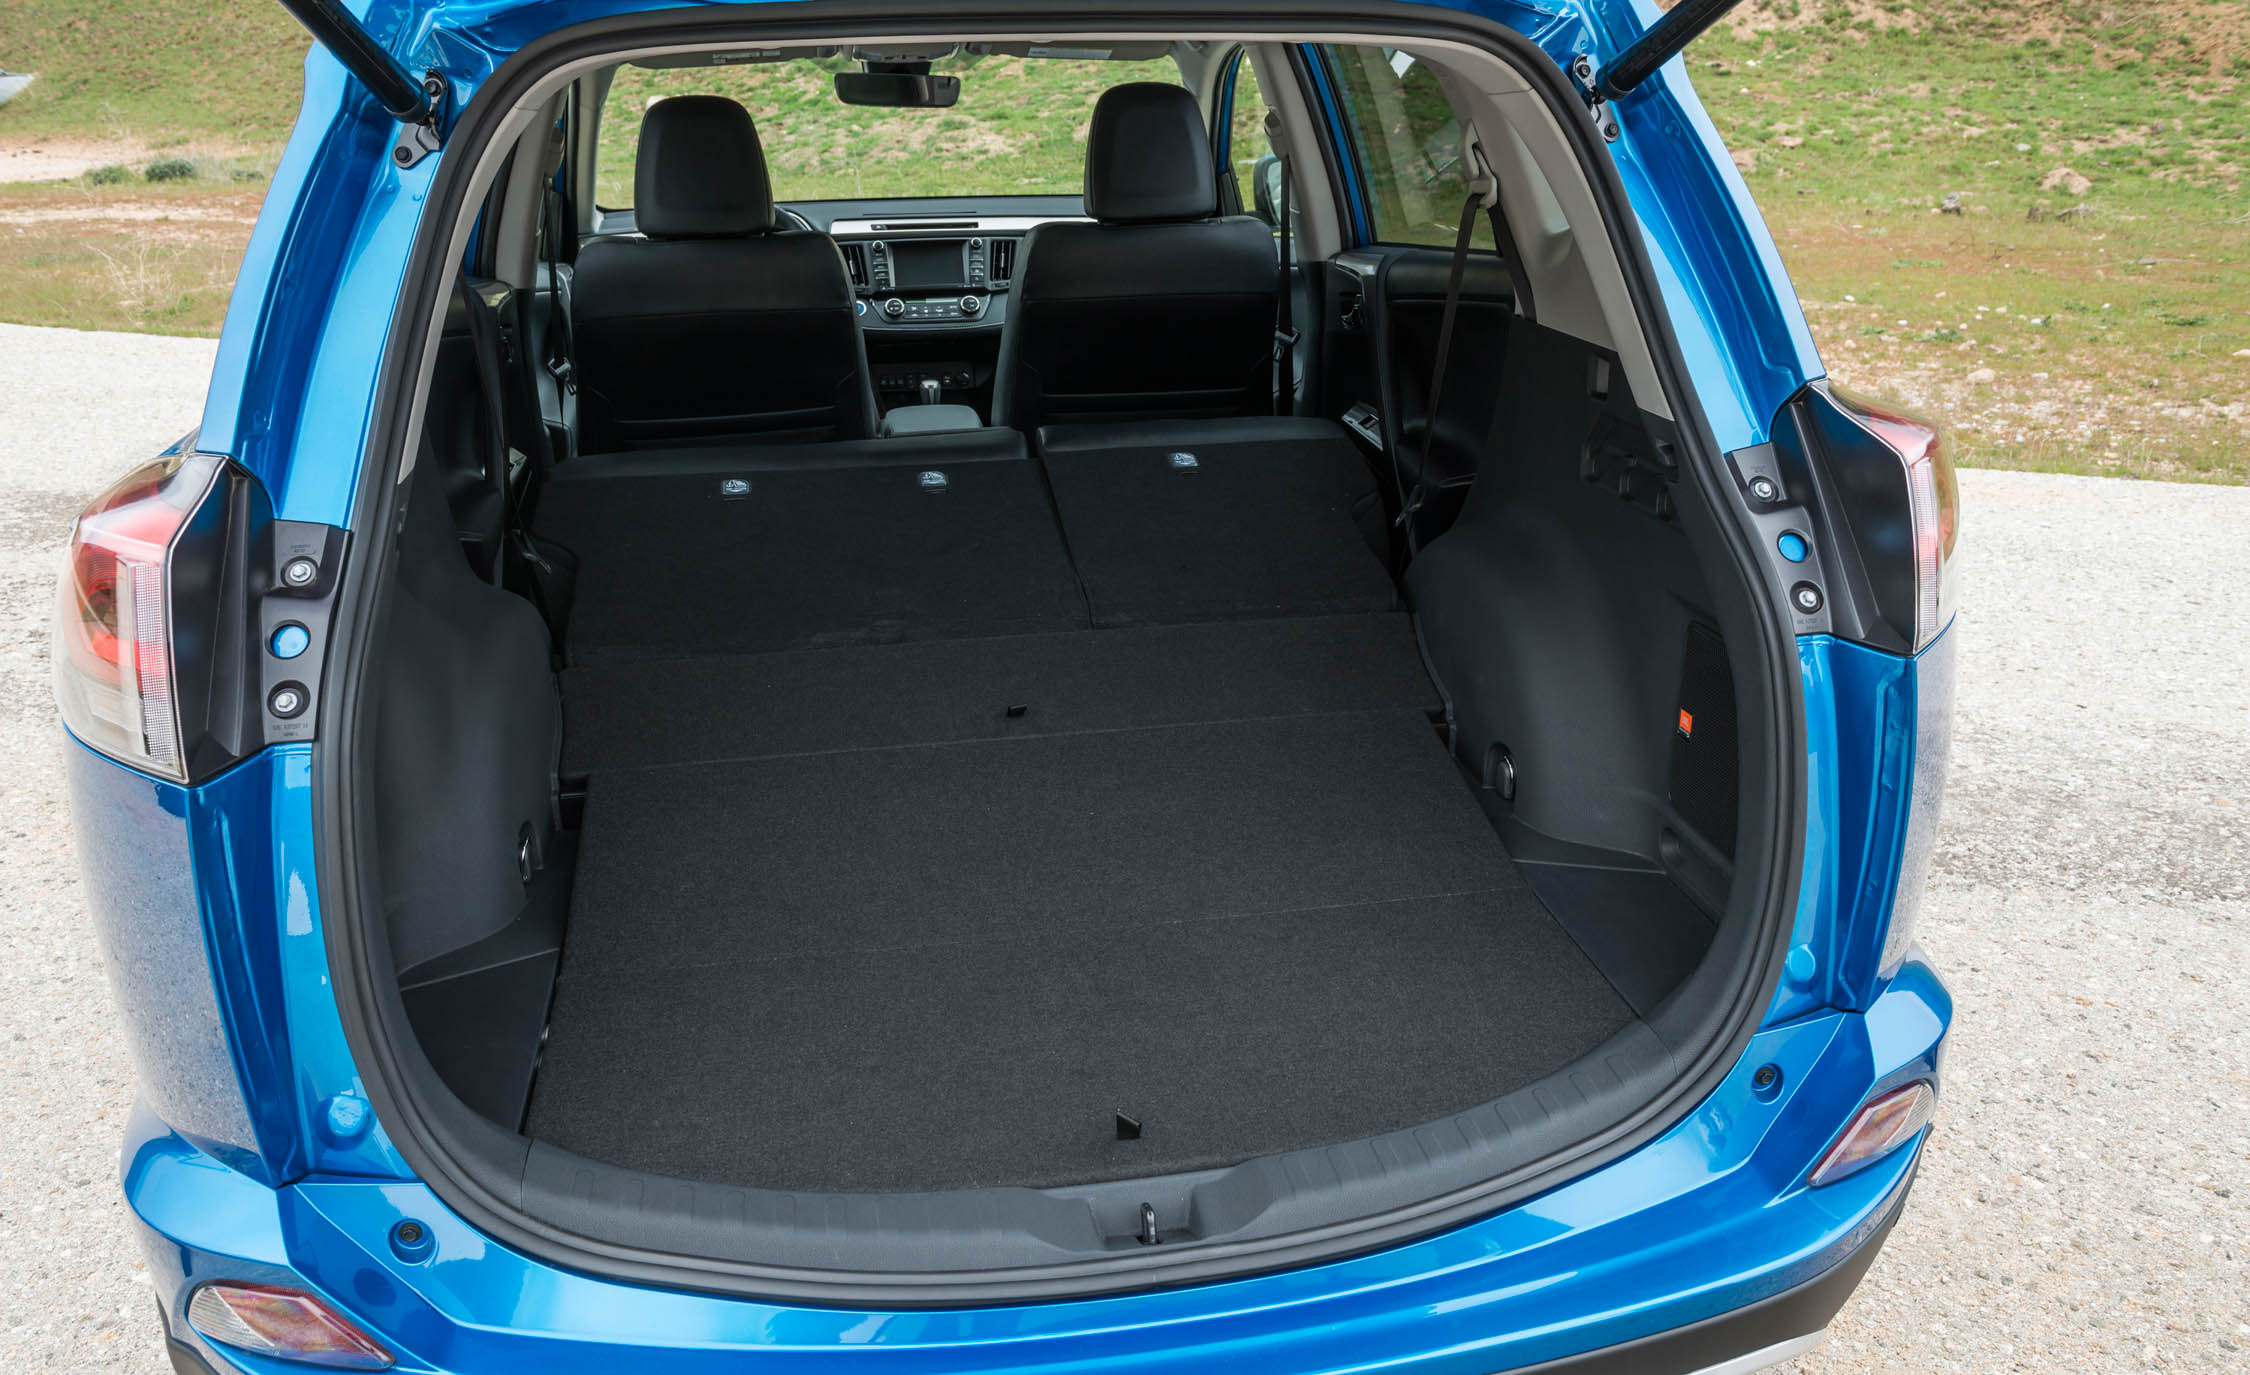 2016 Toyota Rav4 Hybrid Interior Cargo Space With Folded Seats (Photo 16 of 26)